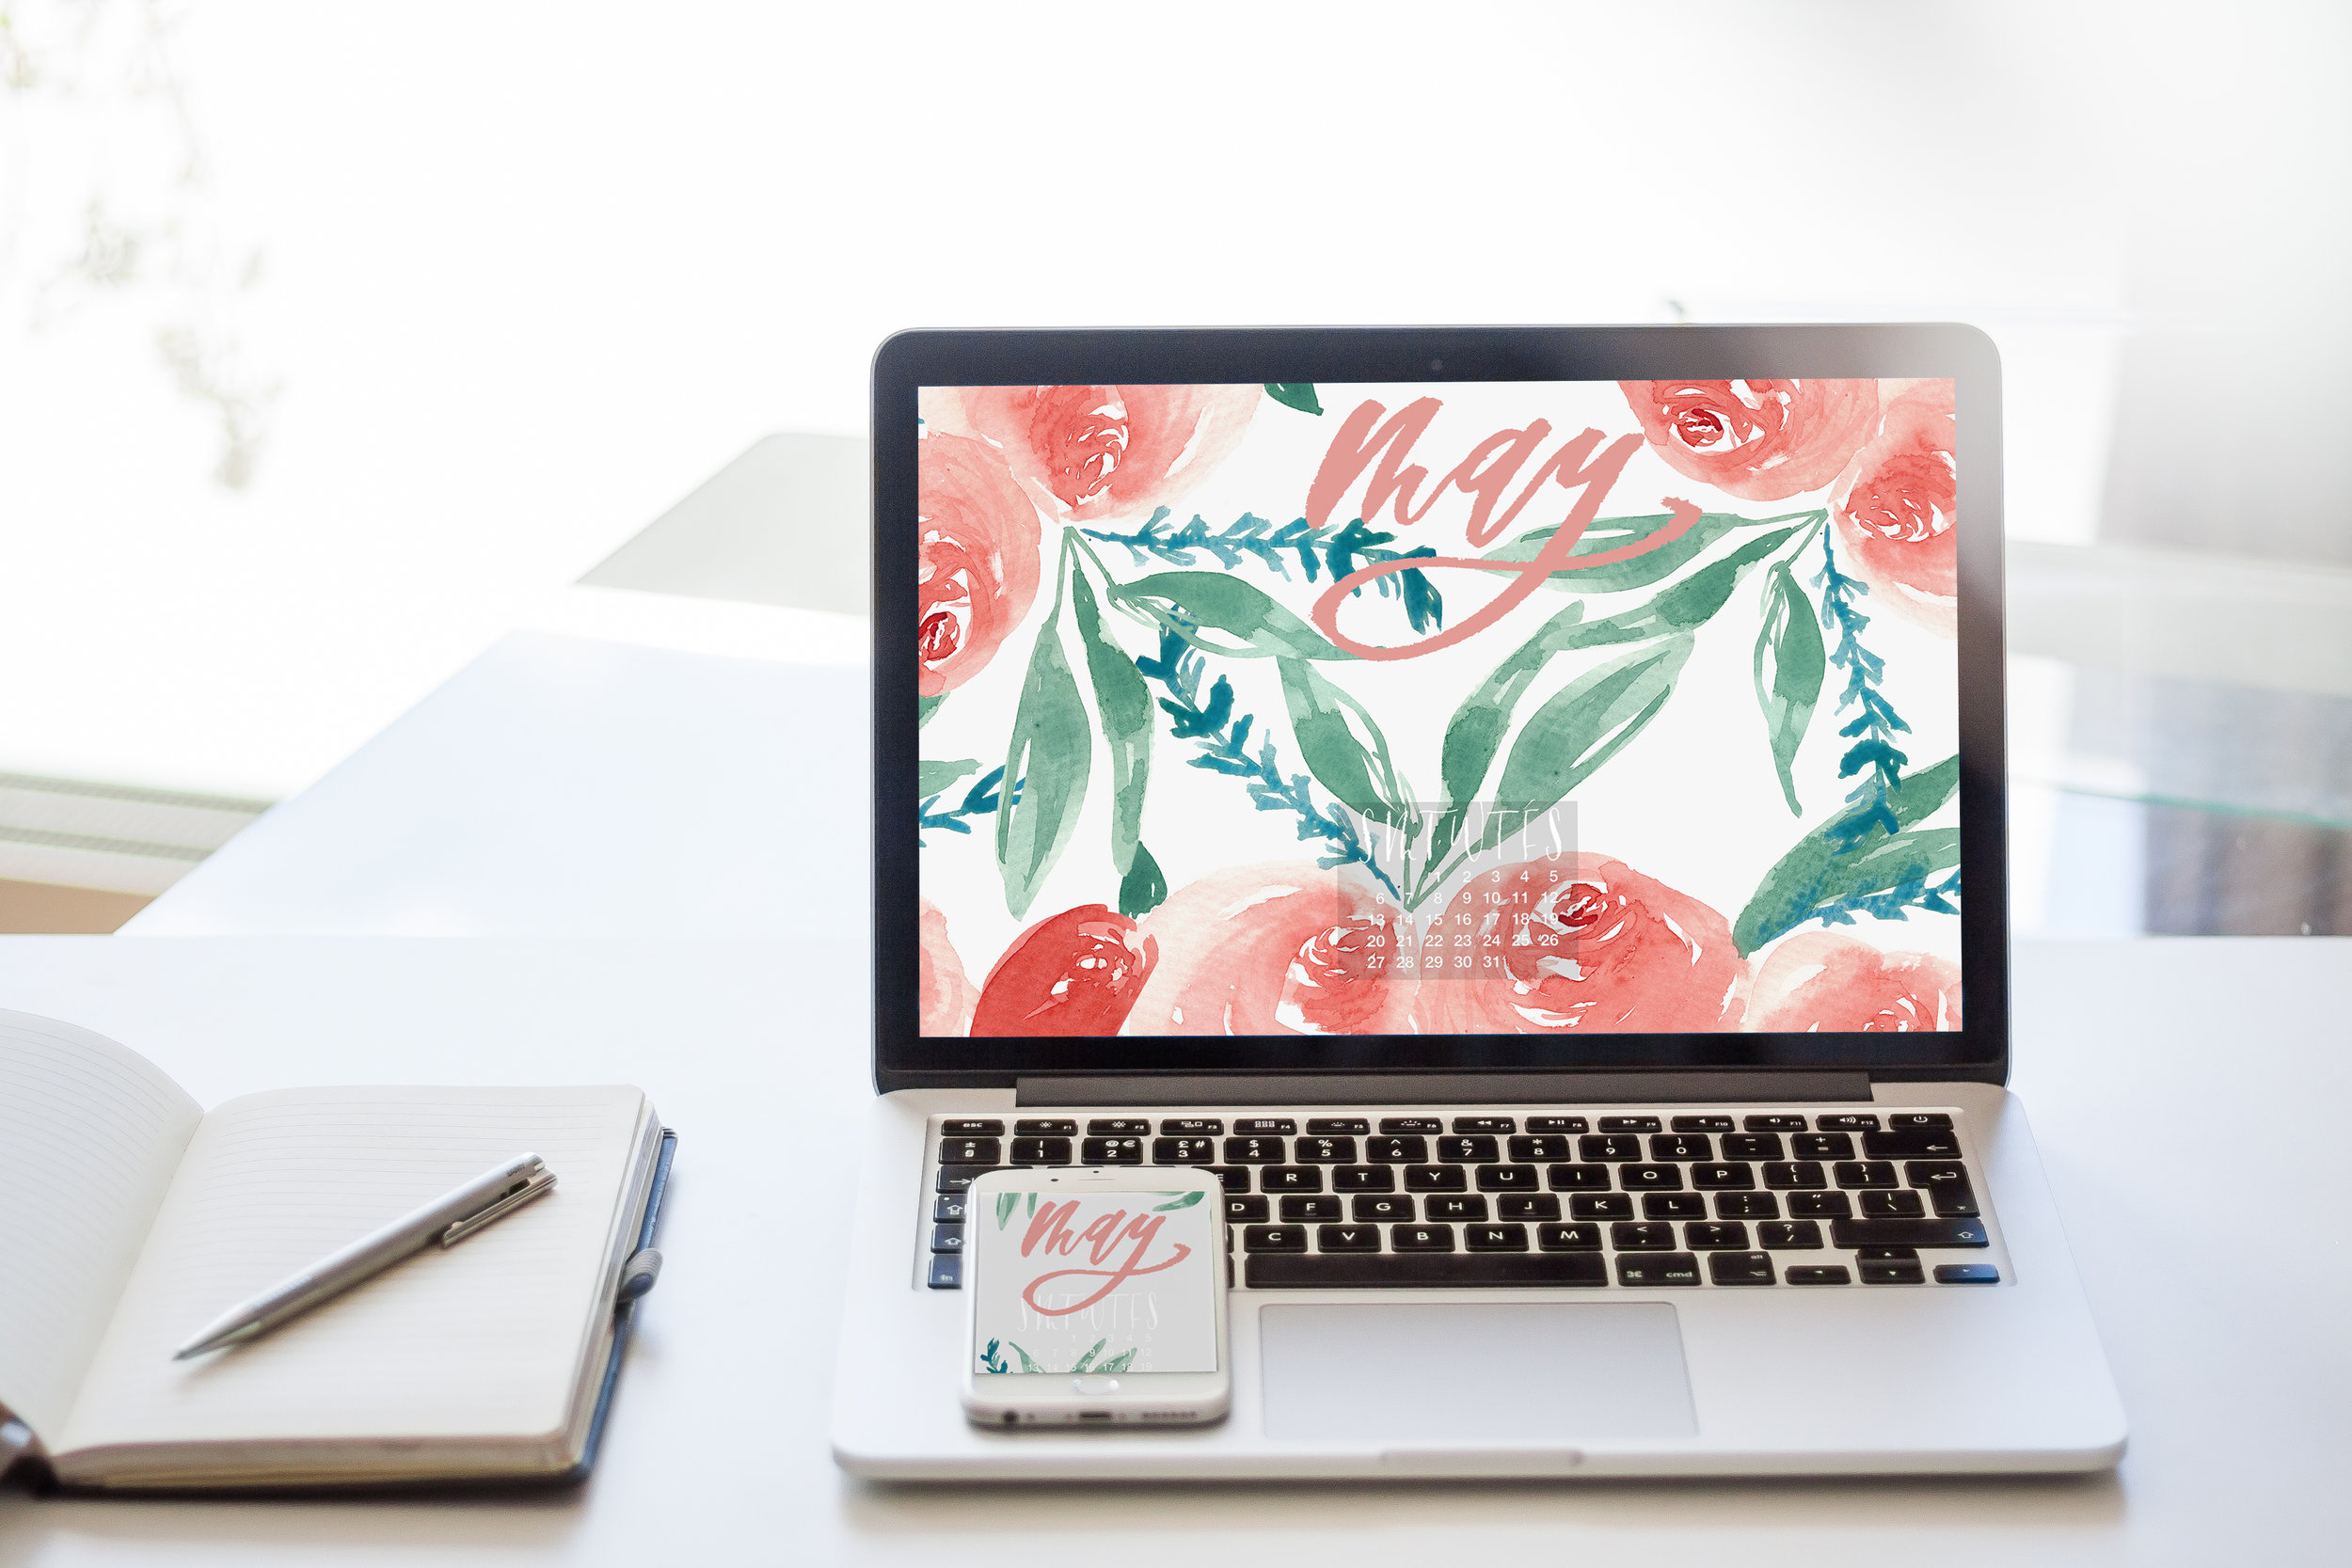 Free iphone and desktop wallpaper May 2018. watercolor florals and brush calligraphy.